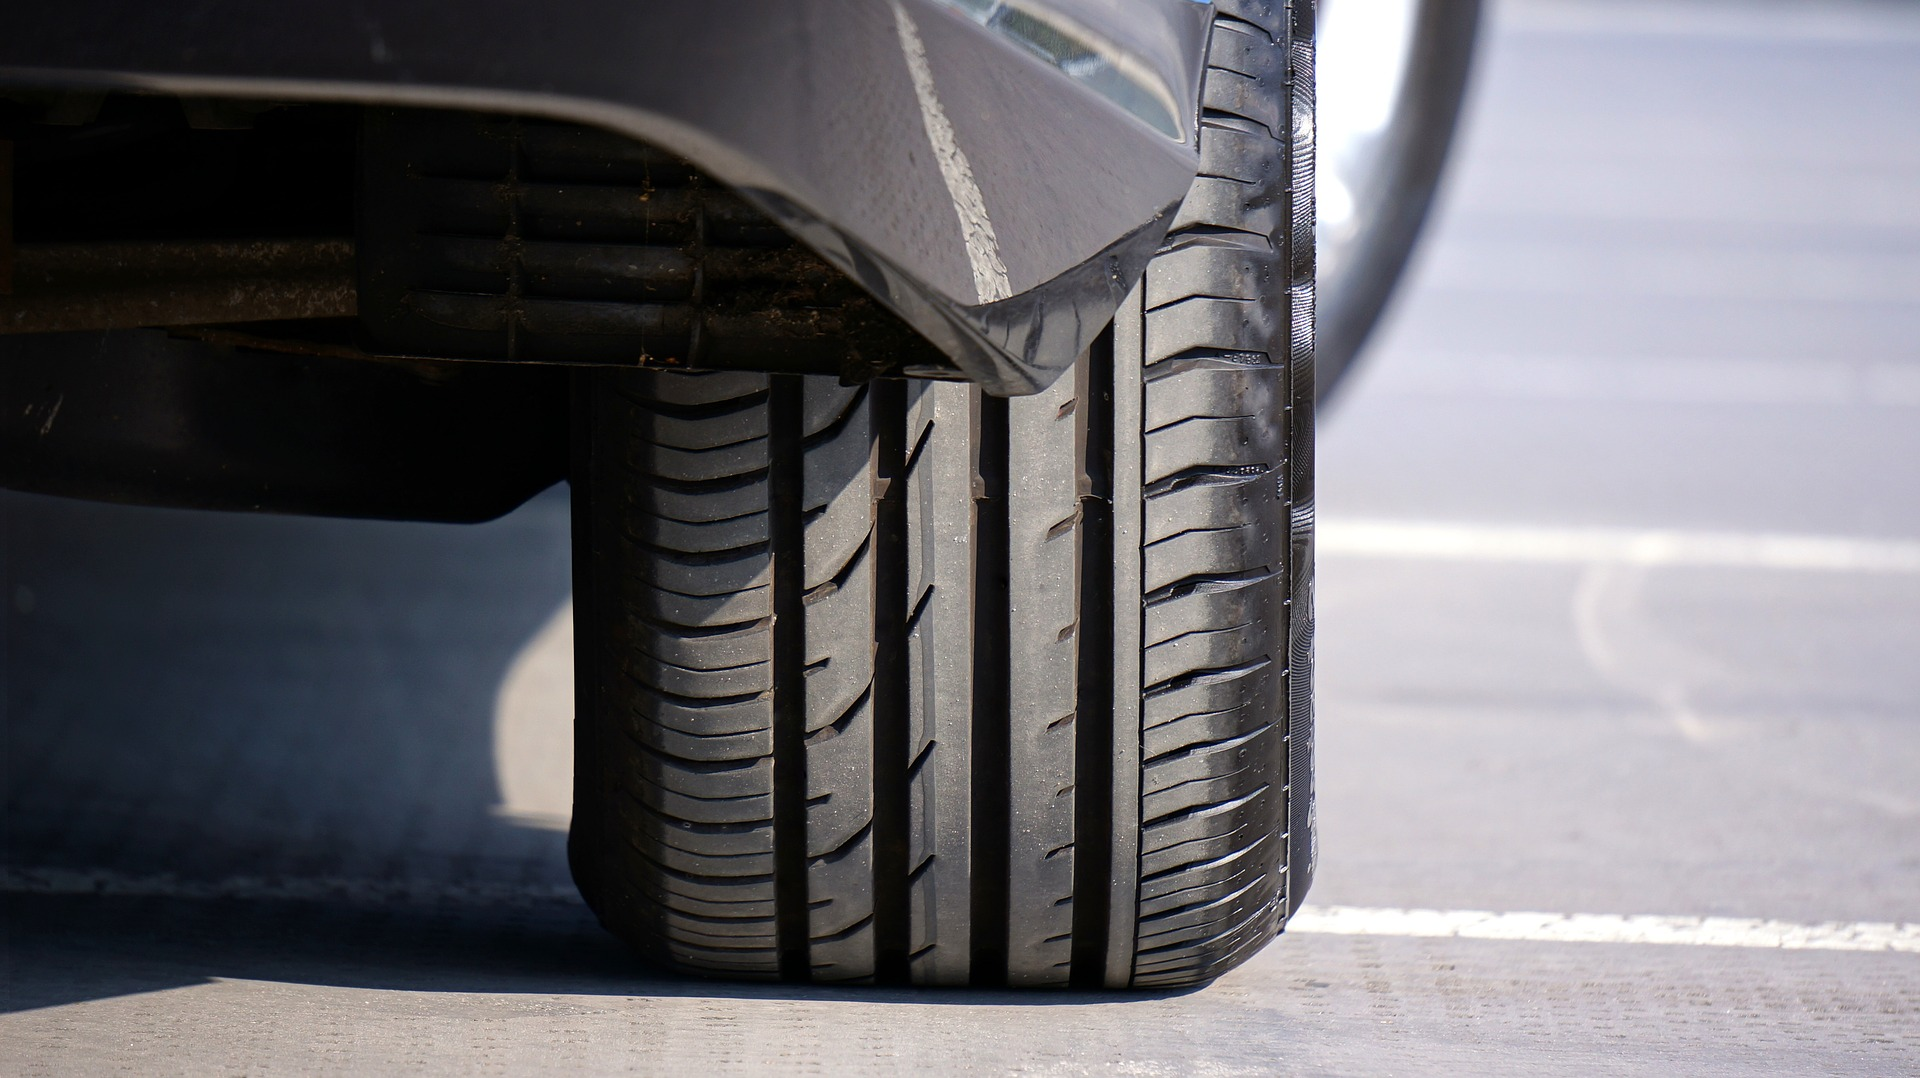 Global Automotive Tubeless Tire Market Is Set To Reach USD 193 Billion By 2024